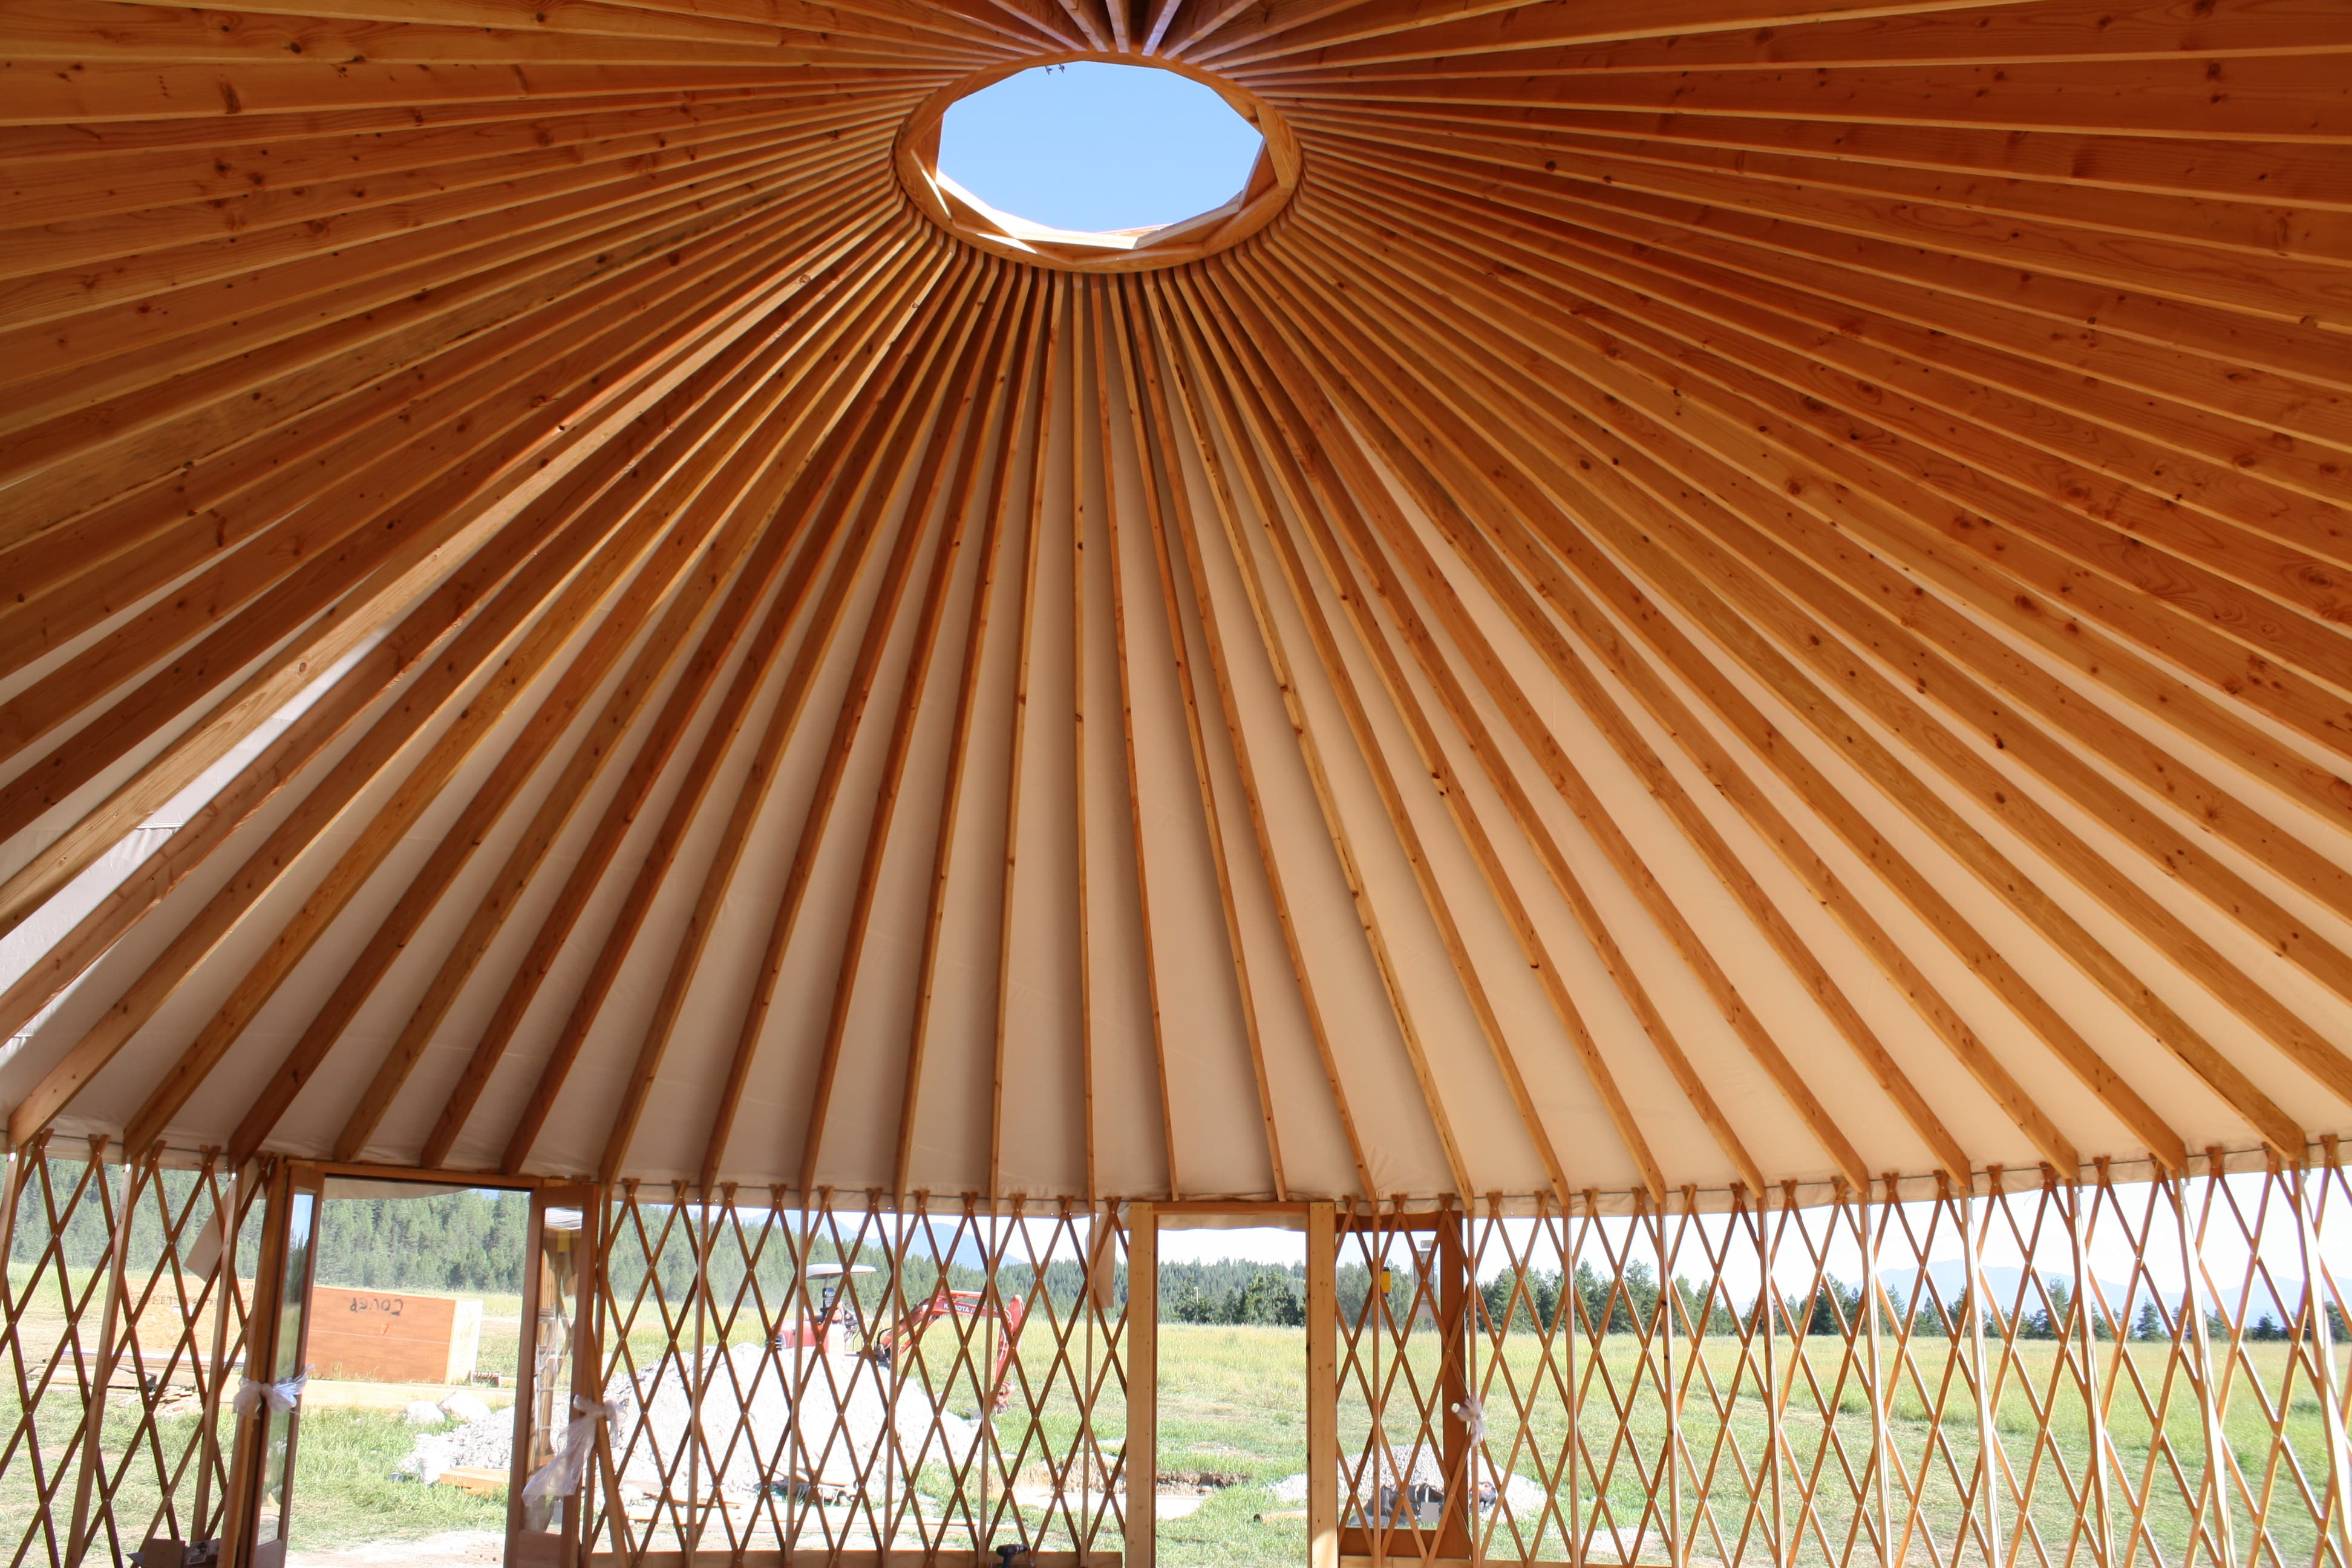 Large Yurts Big Sky Yurts For Sale Shelter Designs Explore all that pacific yurts have to offer. large yurts big sky yurts for sale